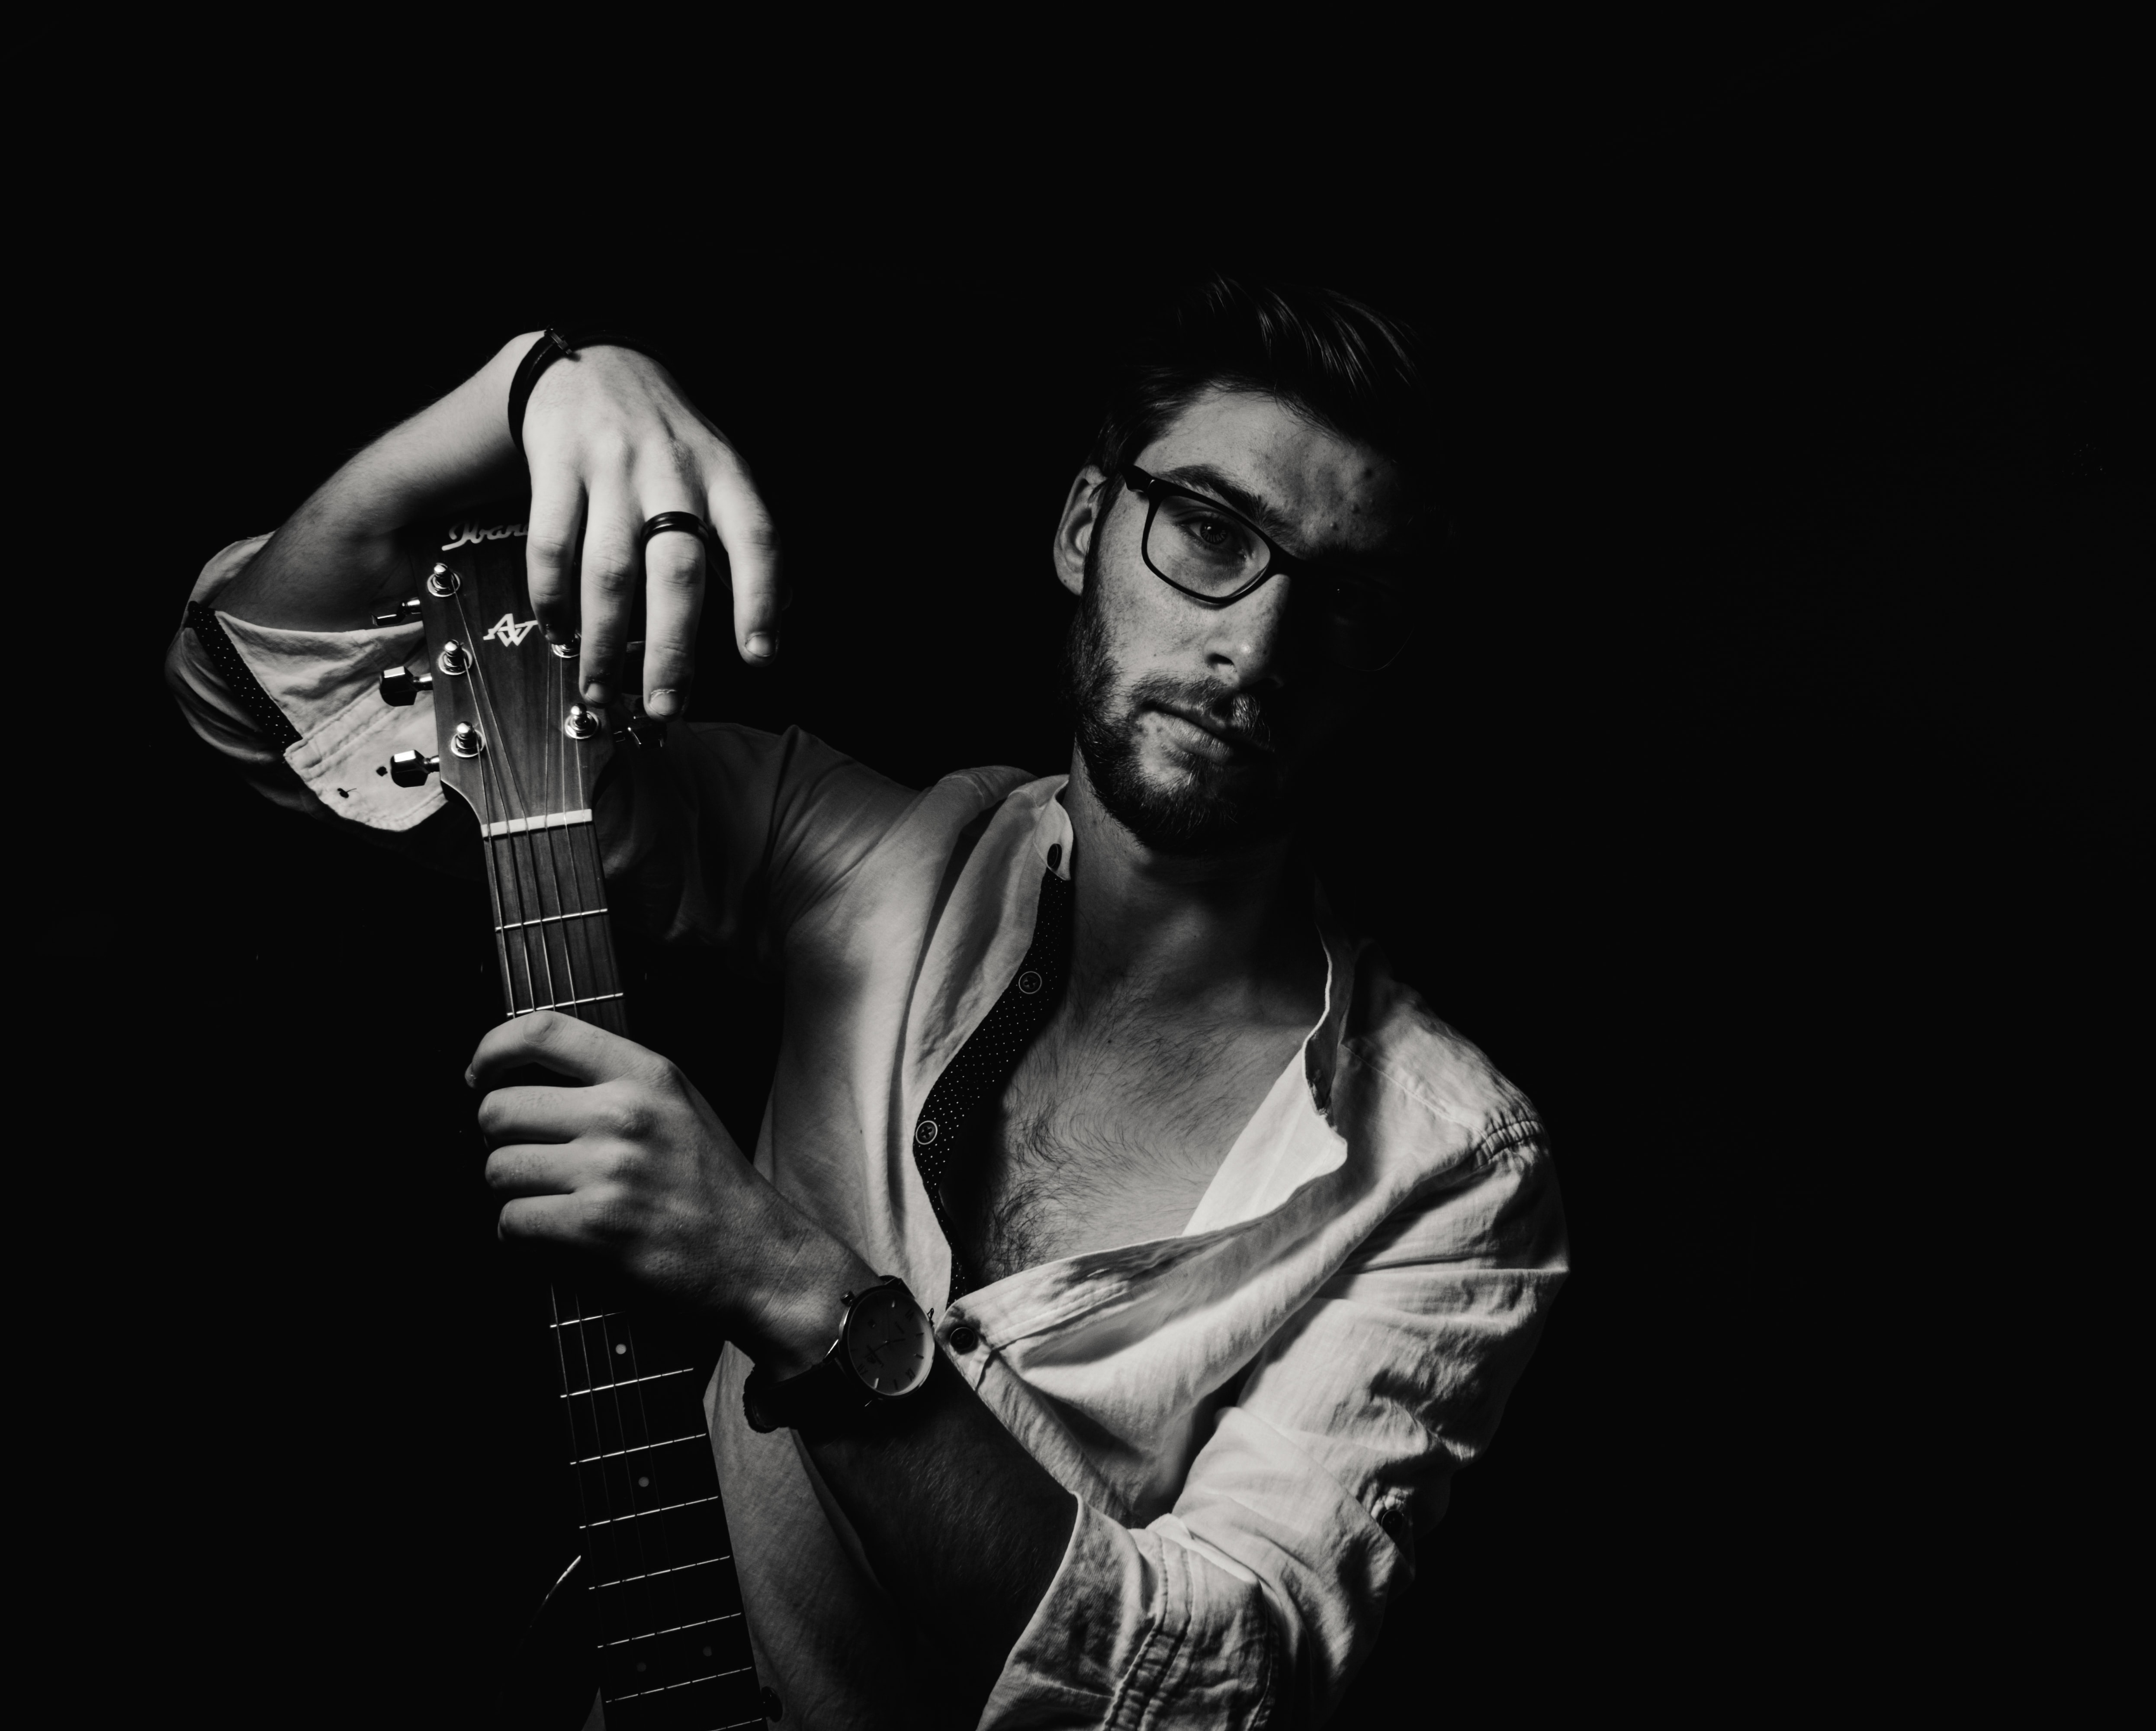 grayscale photo of man holding guitar